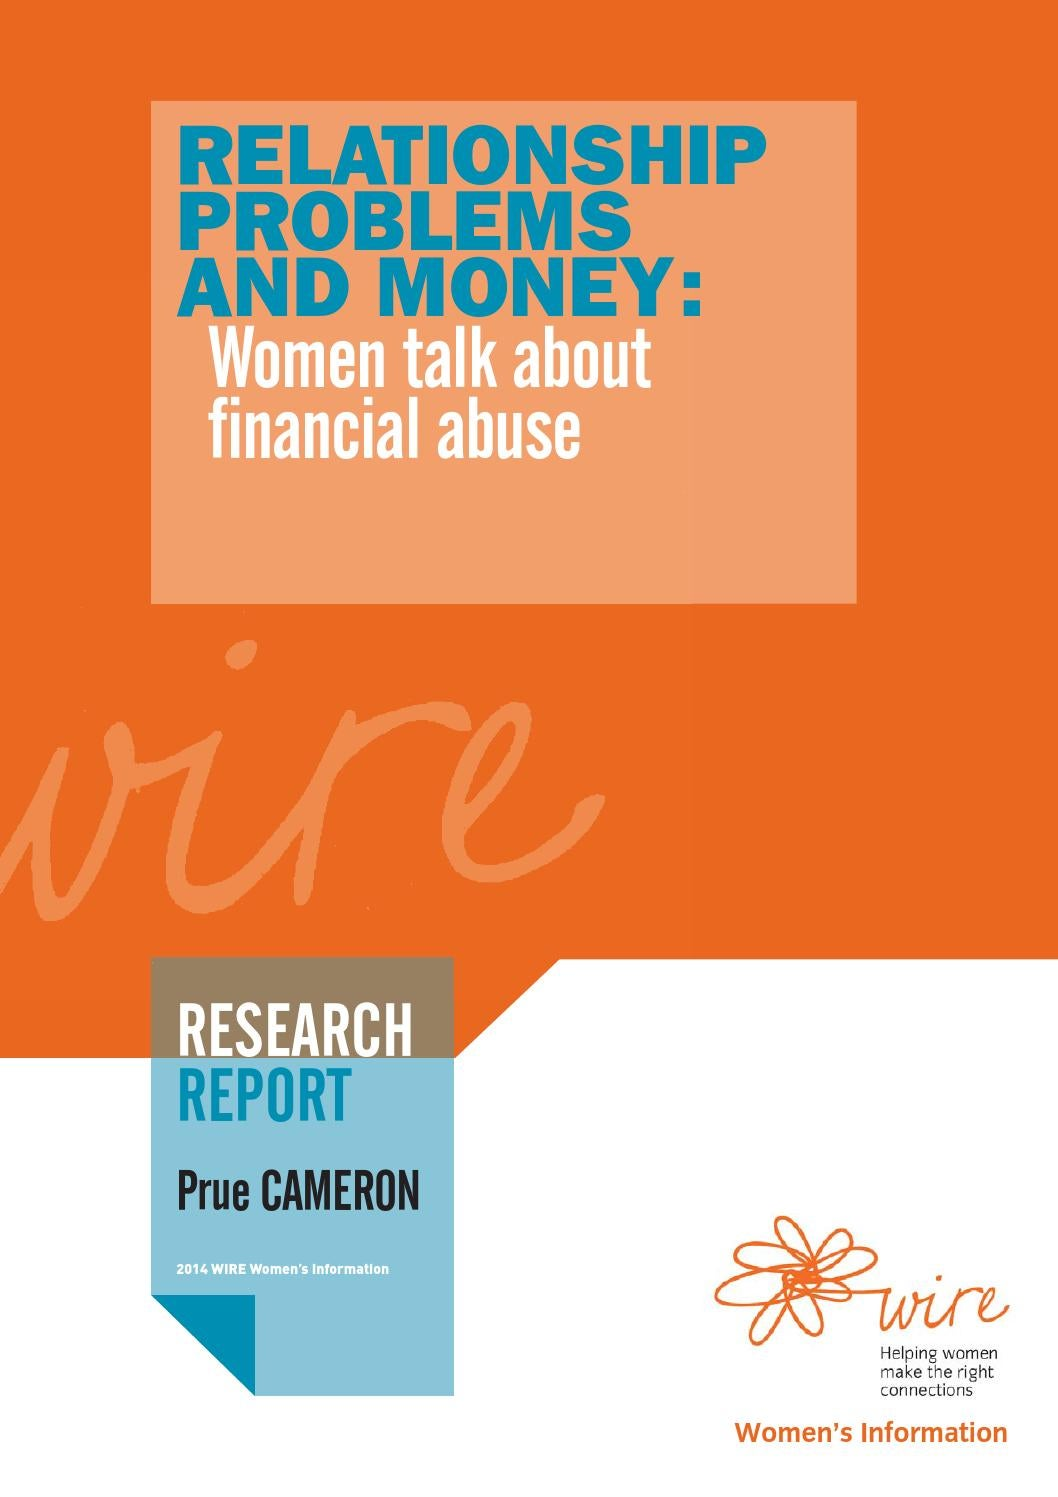 Wire Research Report Relationship Problems And Money Women Talk Wiring Protection About Financial Abuse 2014 By Womens Information Issuu